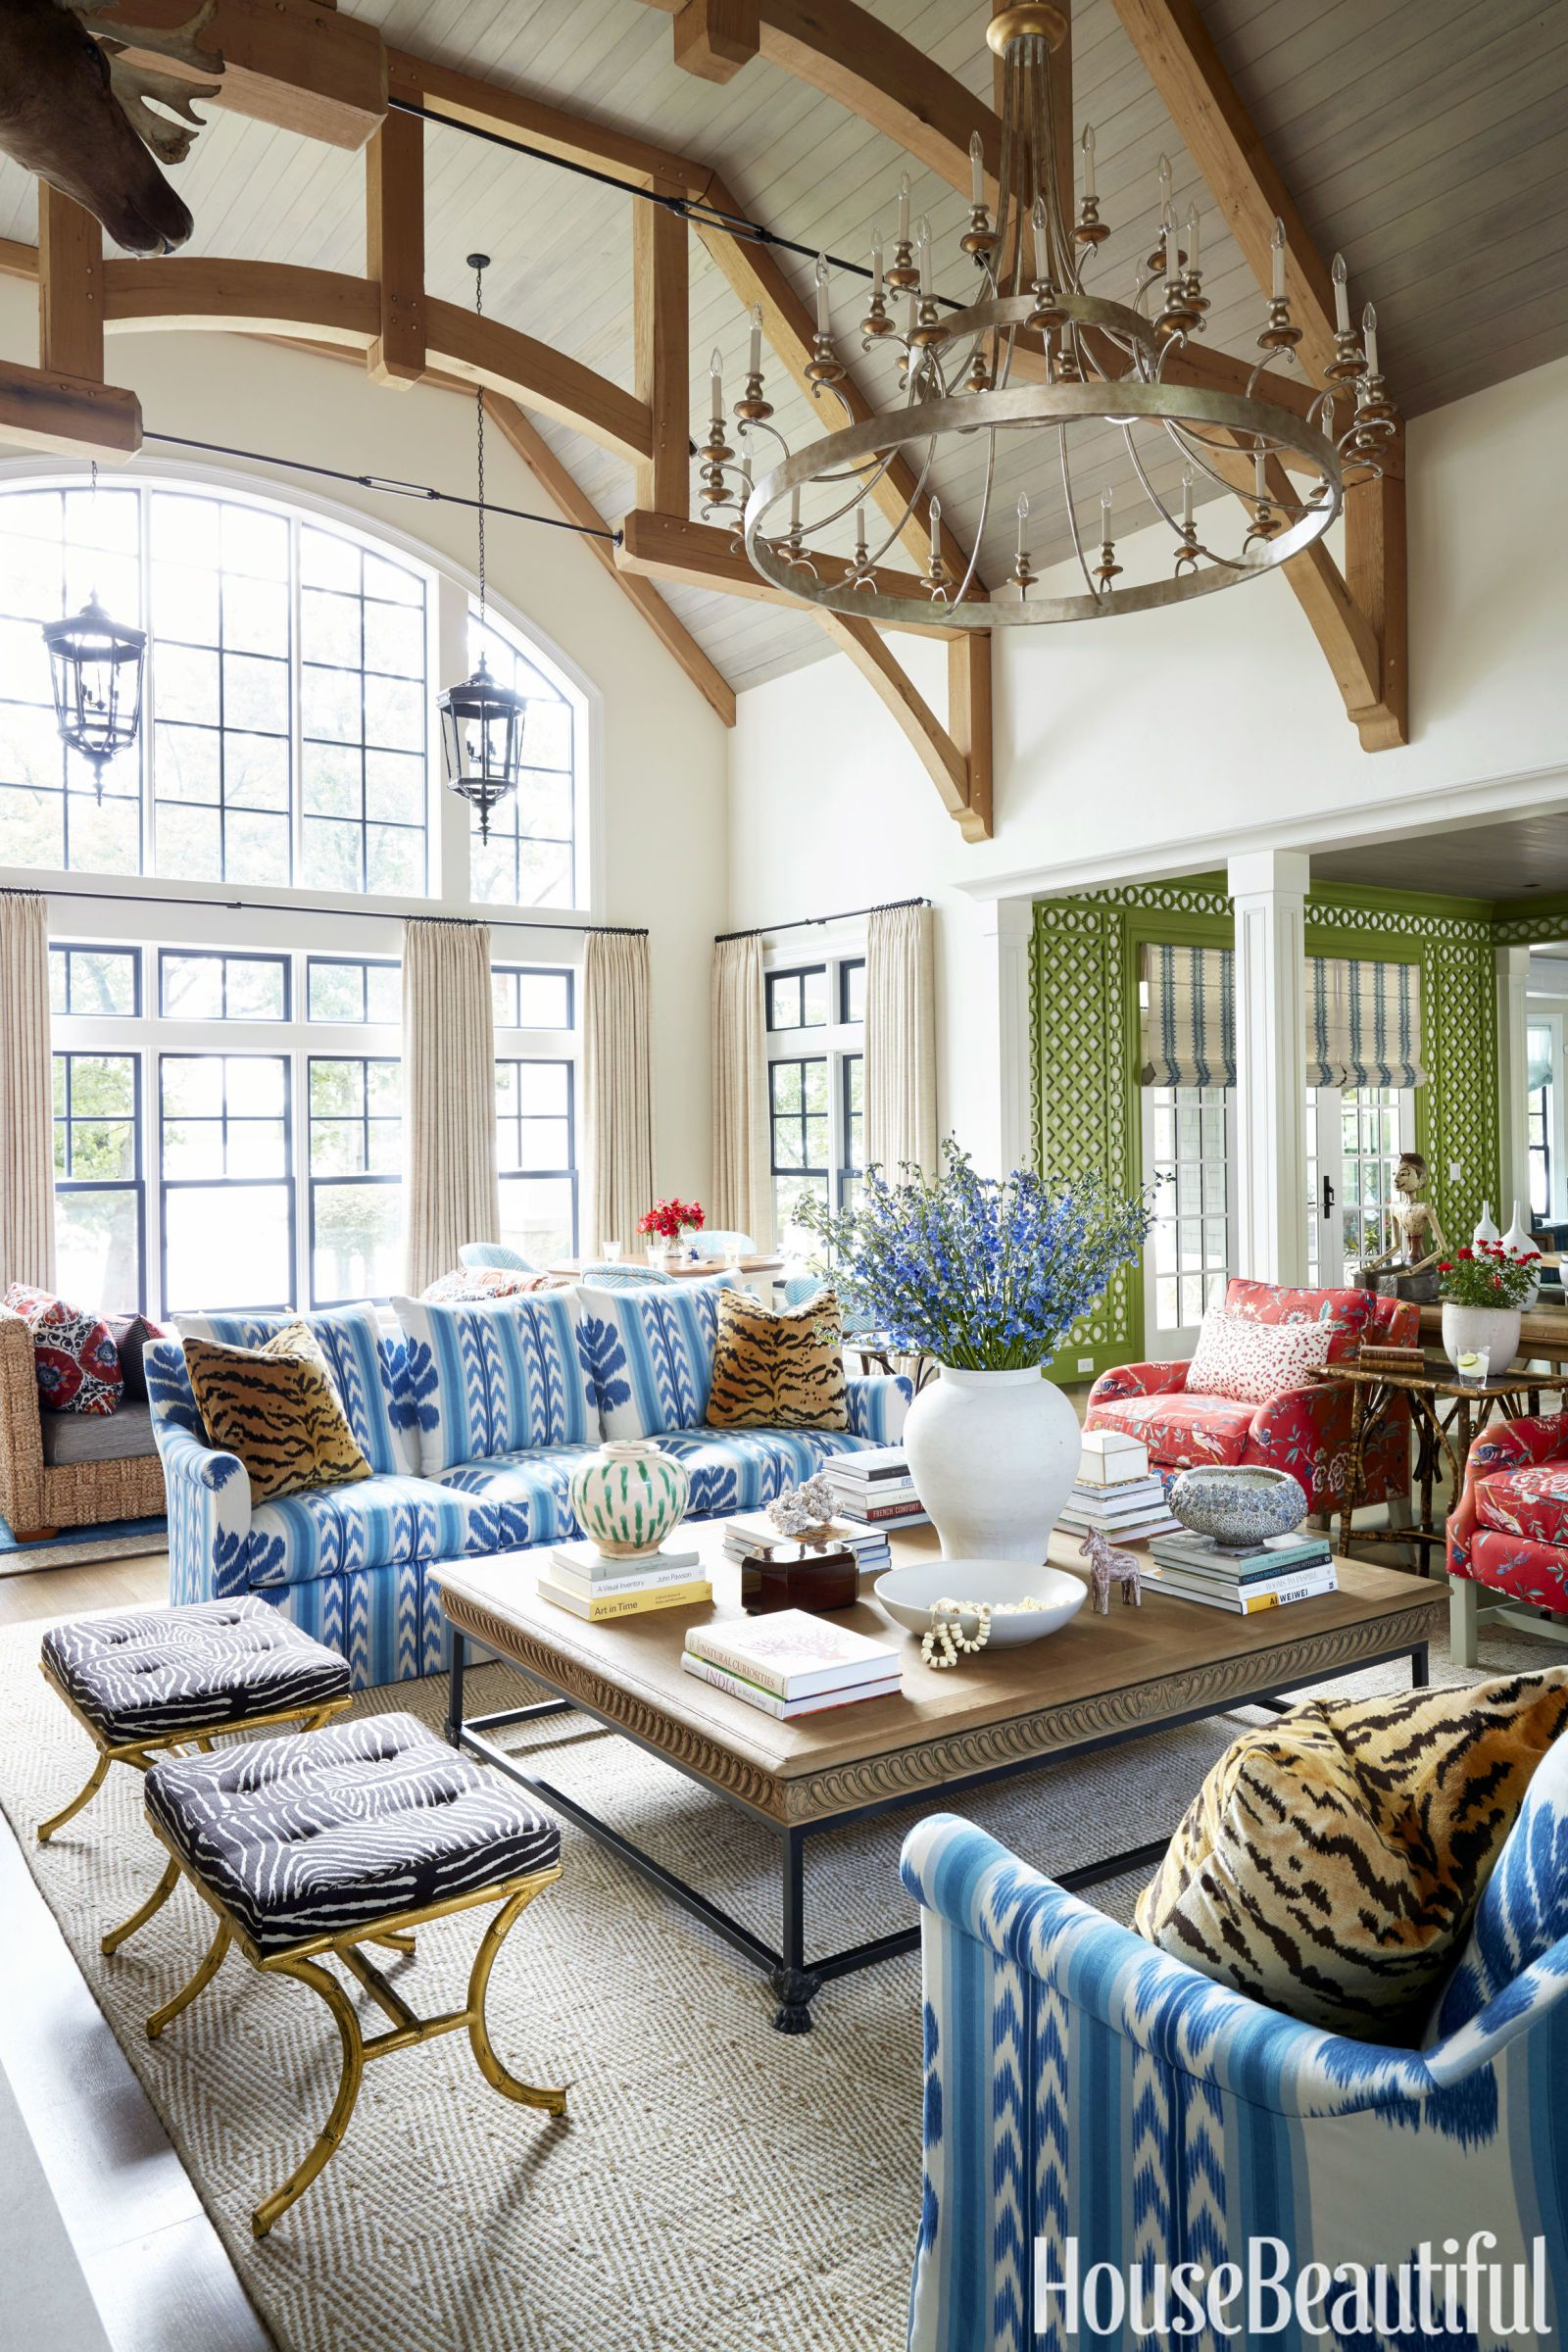 This Ginormous Entertaining Space Puts the